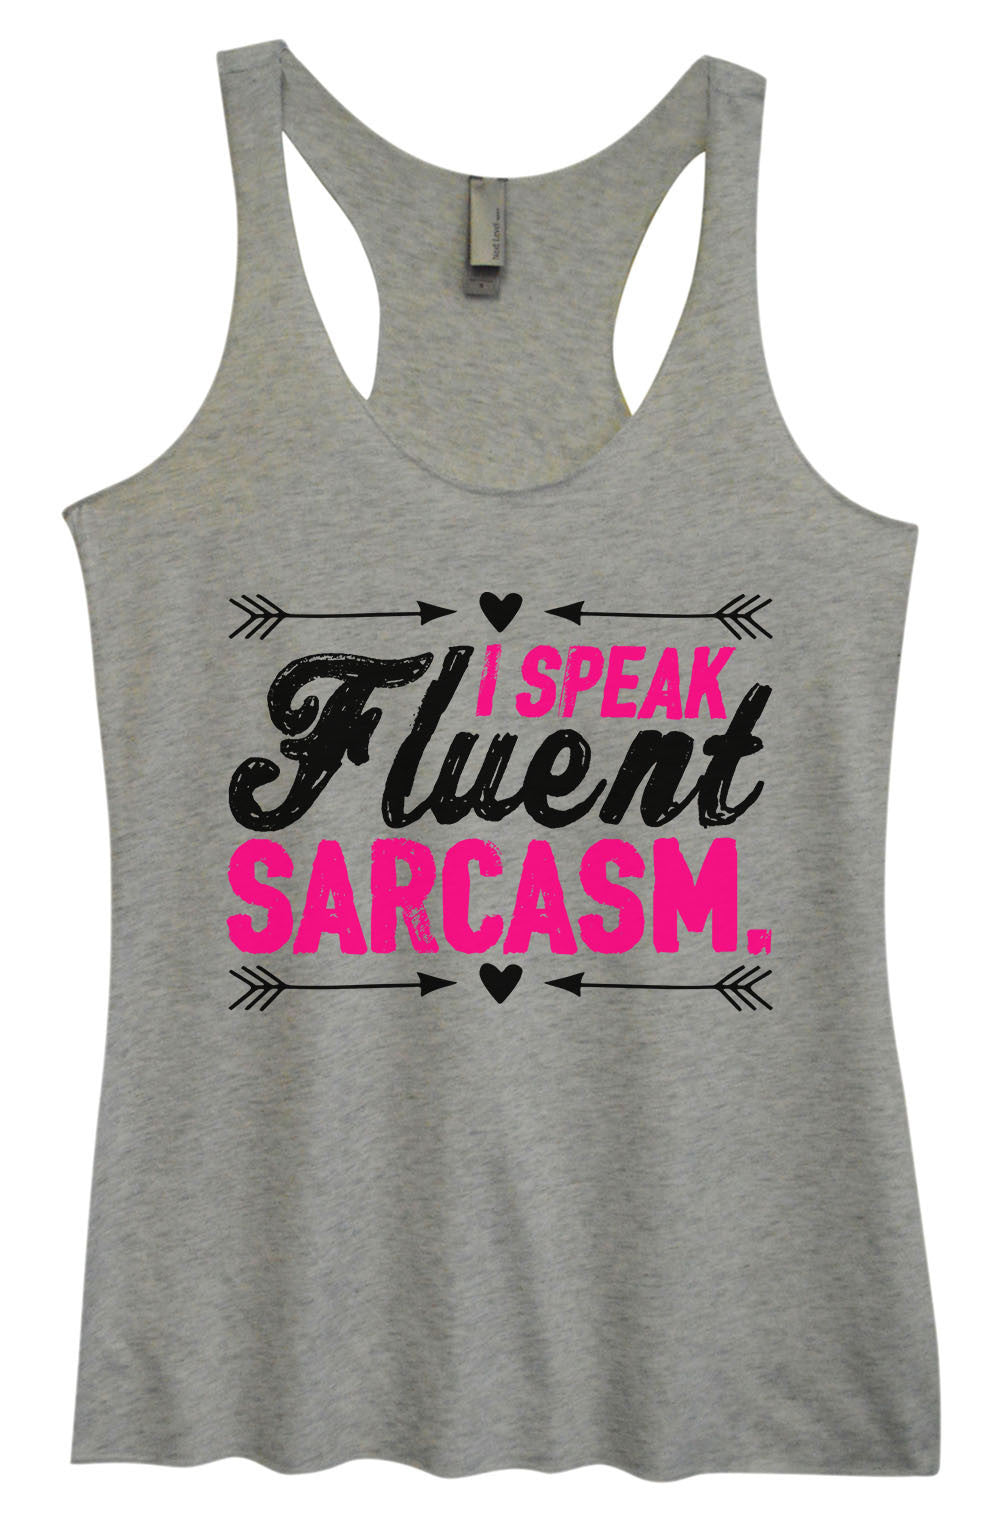 Womens Fashion Triblend Tank Top - I Speak Fluent Sarcasm. - Tri-1410 - Funny Shirts Tank Tops Burnouts and Triblends  - 1